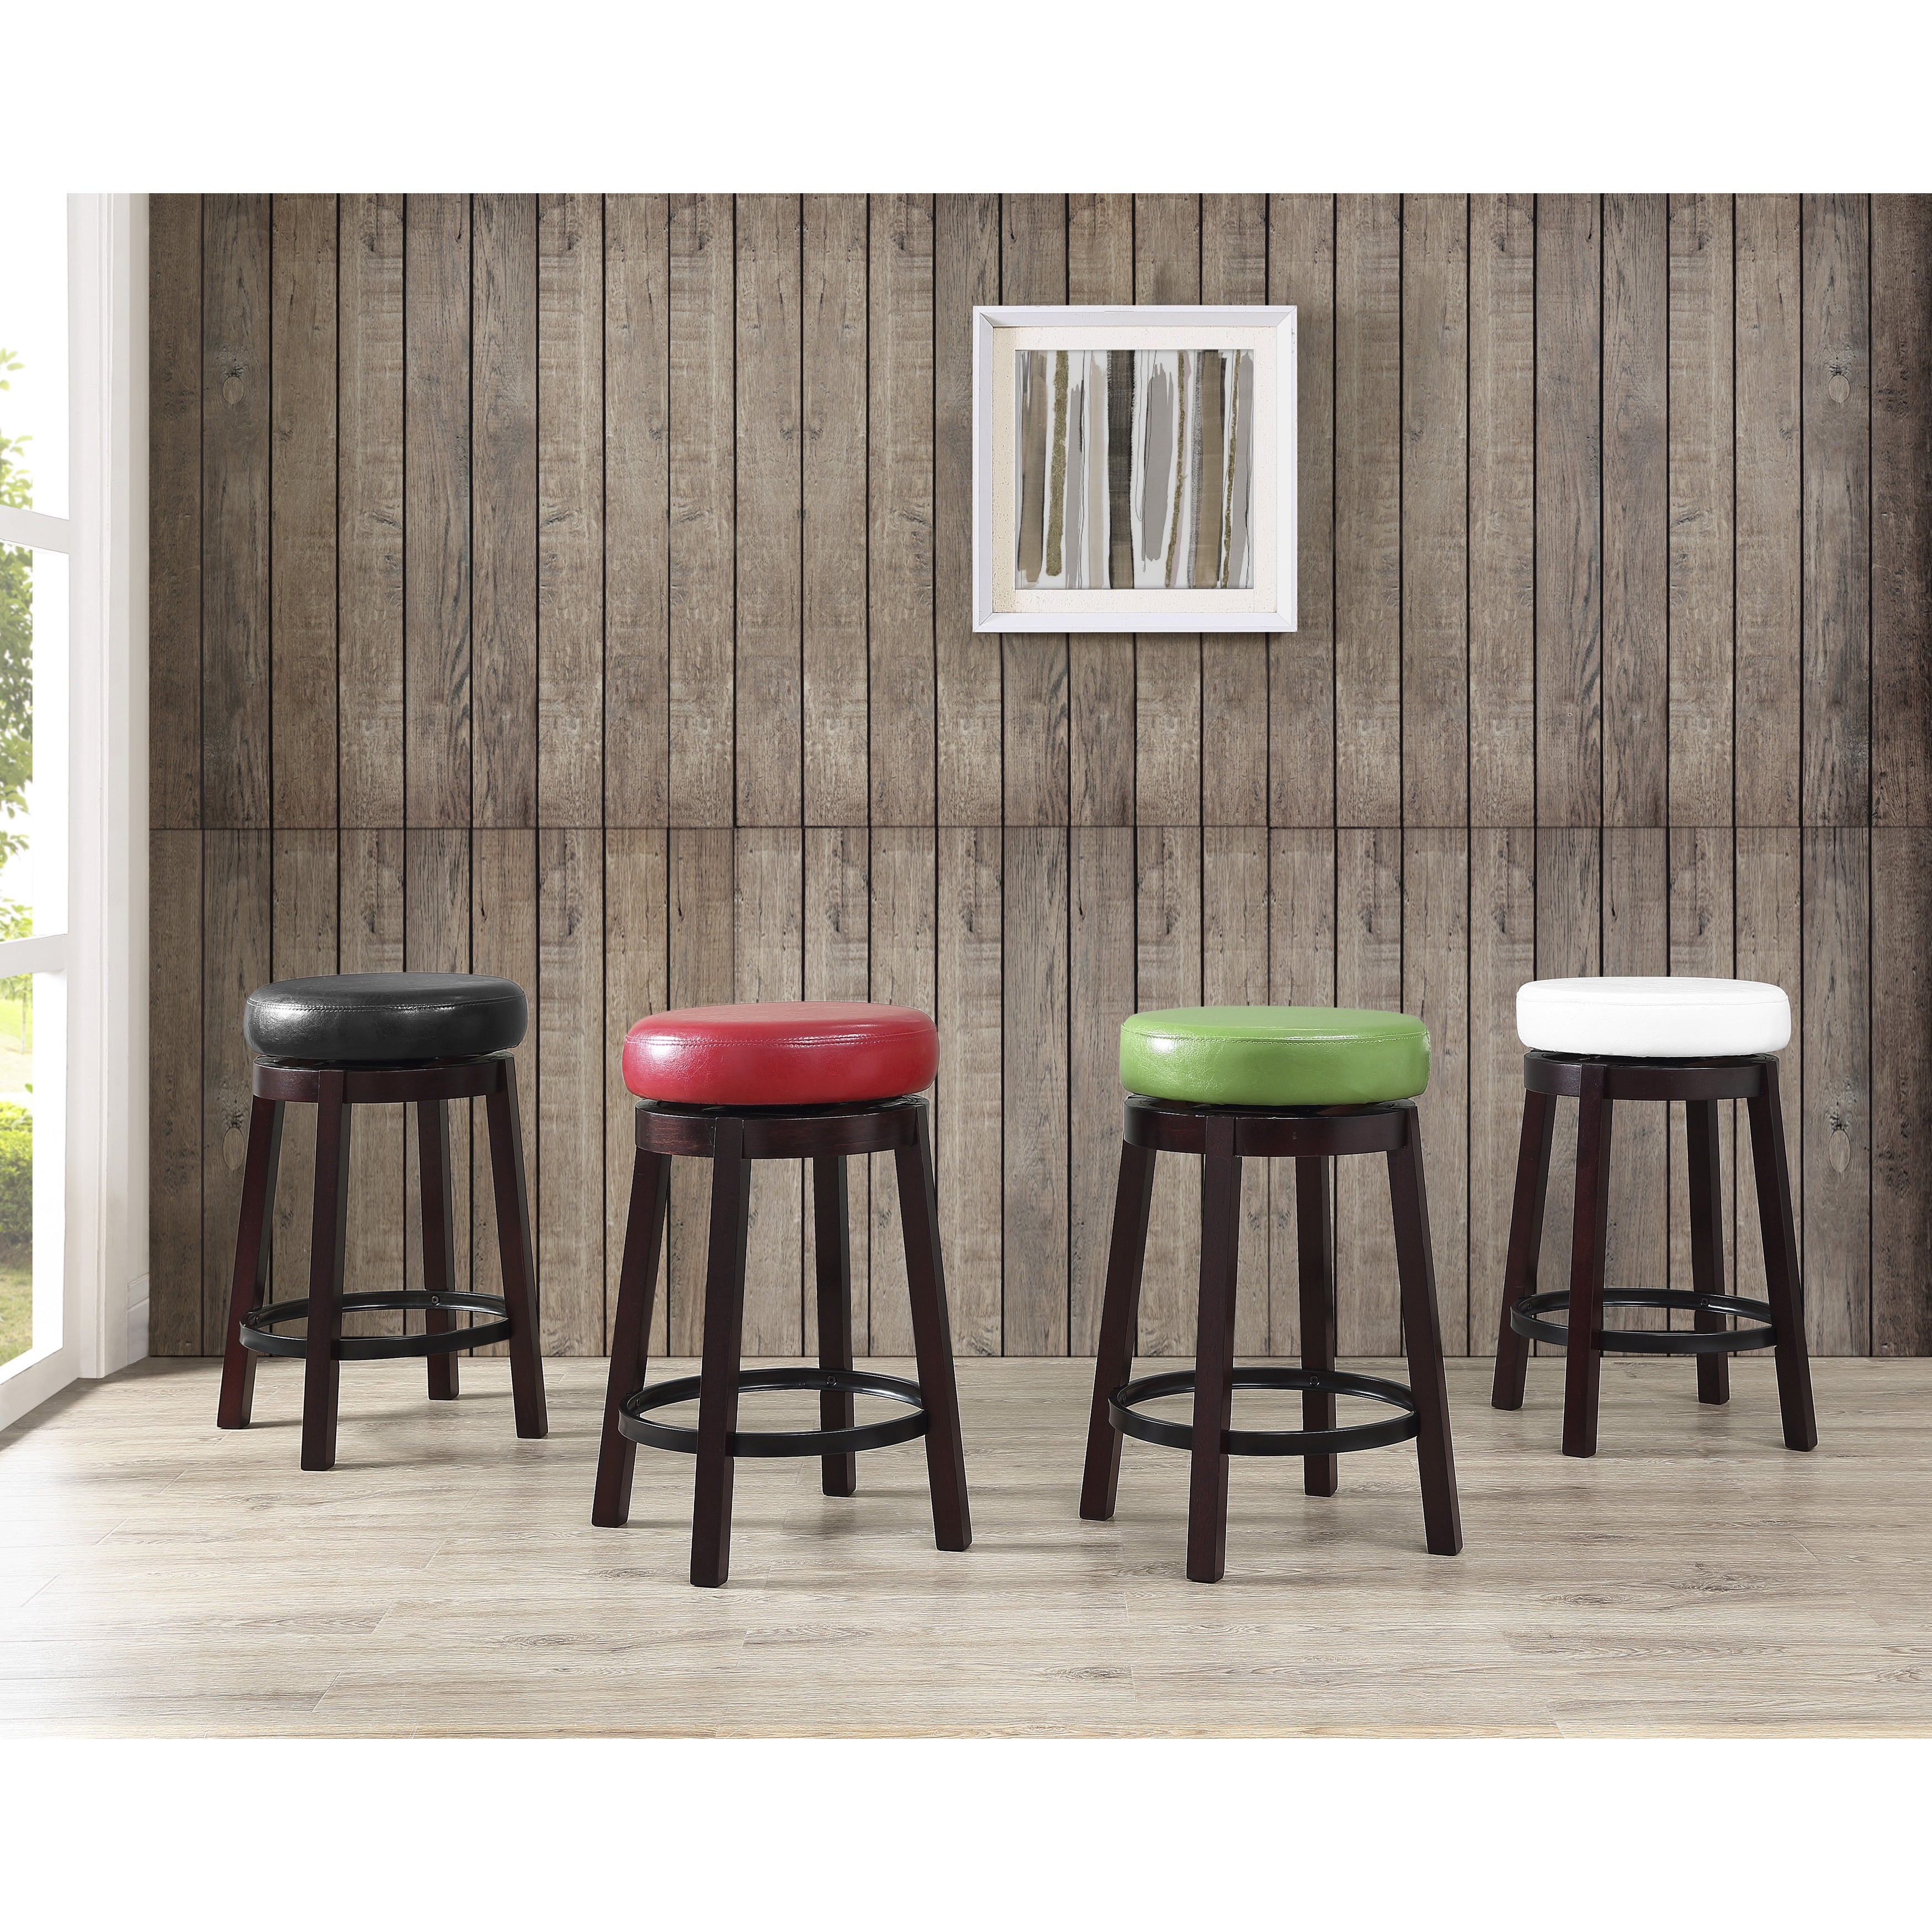 Clay alder home humboldt swivel counter height bar stool with leather seat and metal foot rest